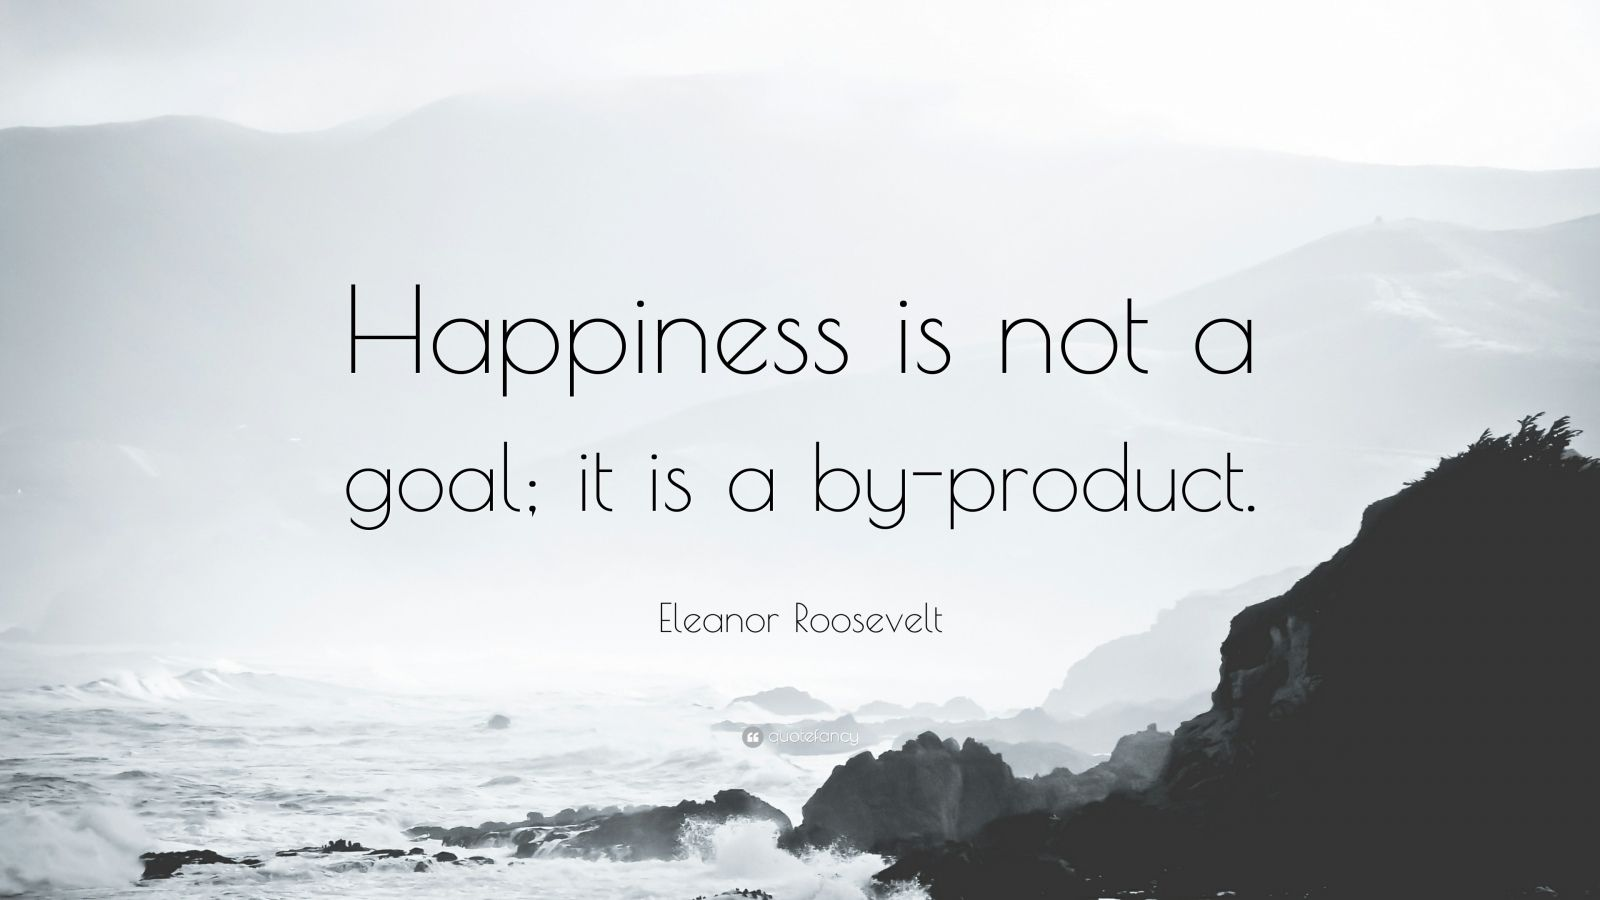 32713 Eleanor Roosevelt Quote Happiness Is Not A Goal It Is A By